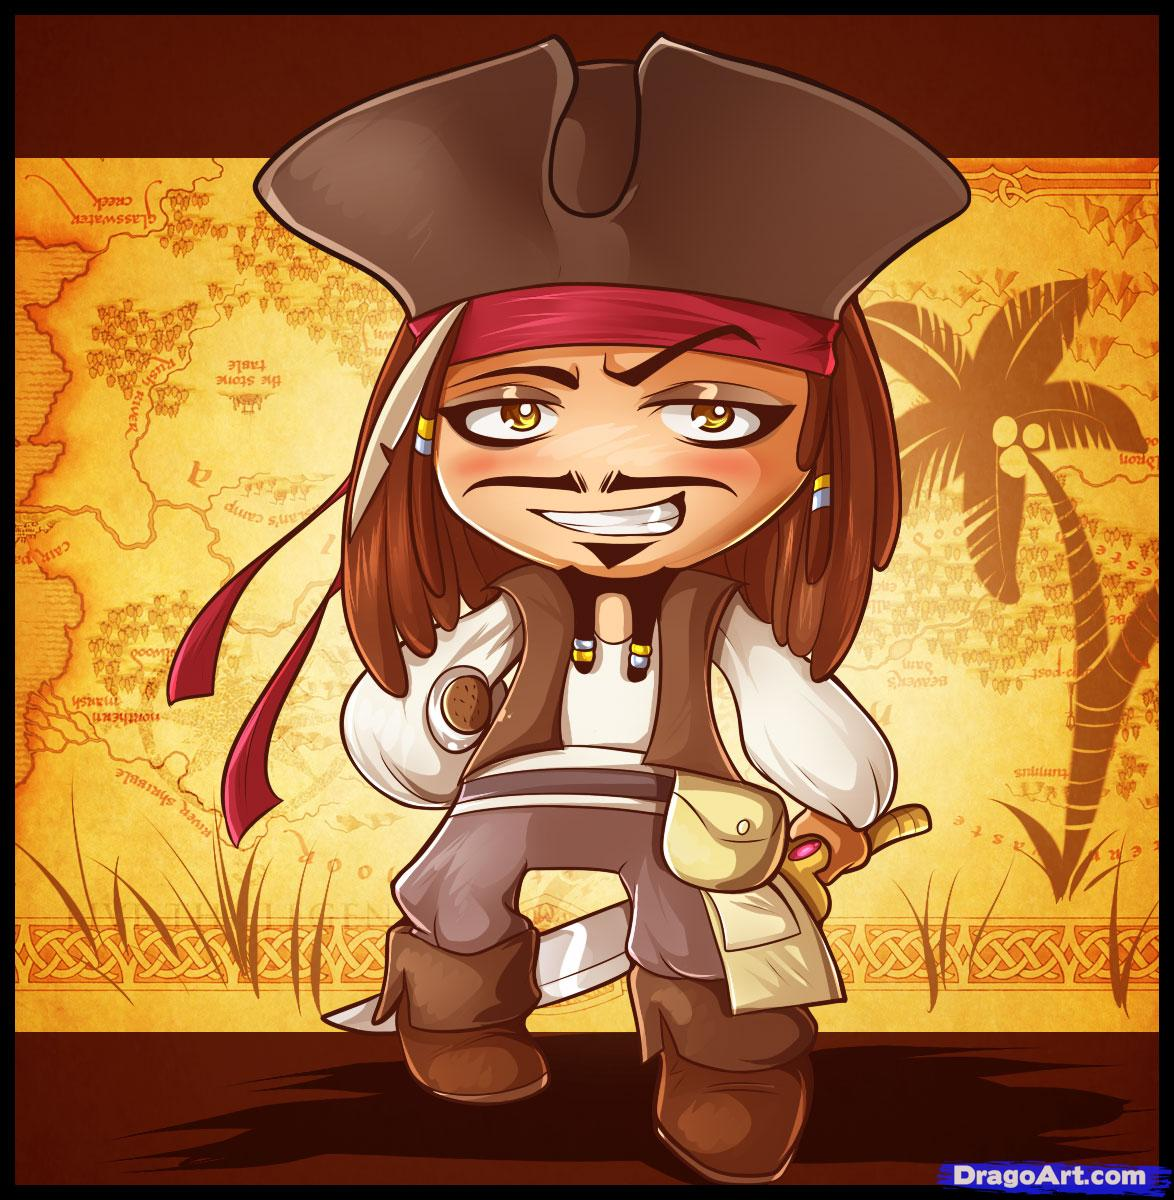 Drawn sparrow detailed Sparrow For ♛ to Chibi